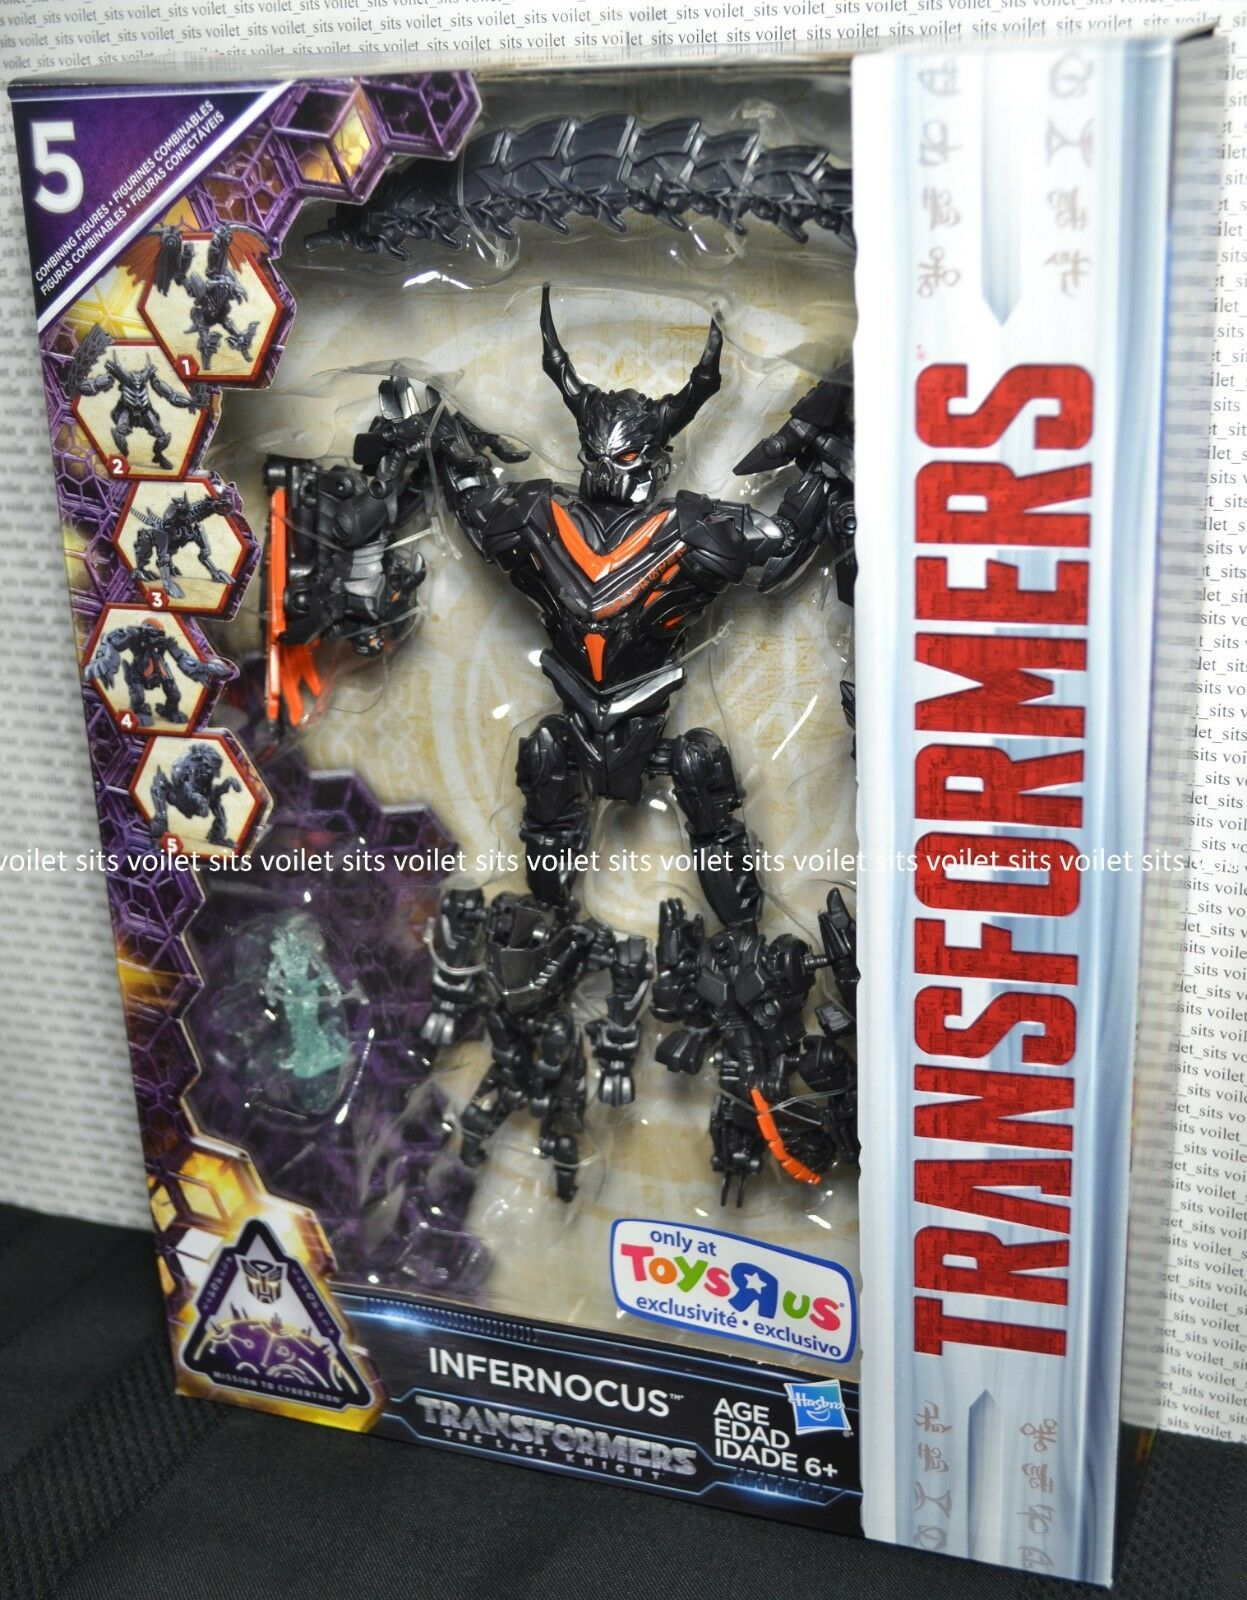 Transformers Last Knight Mission To Cybertron 5-Bot Combiner Figure Infernocus